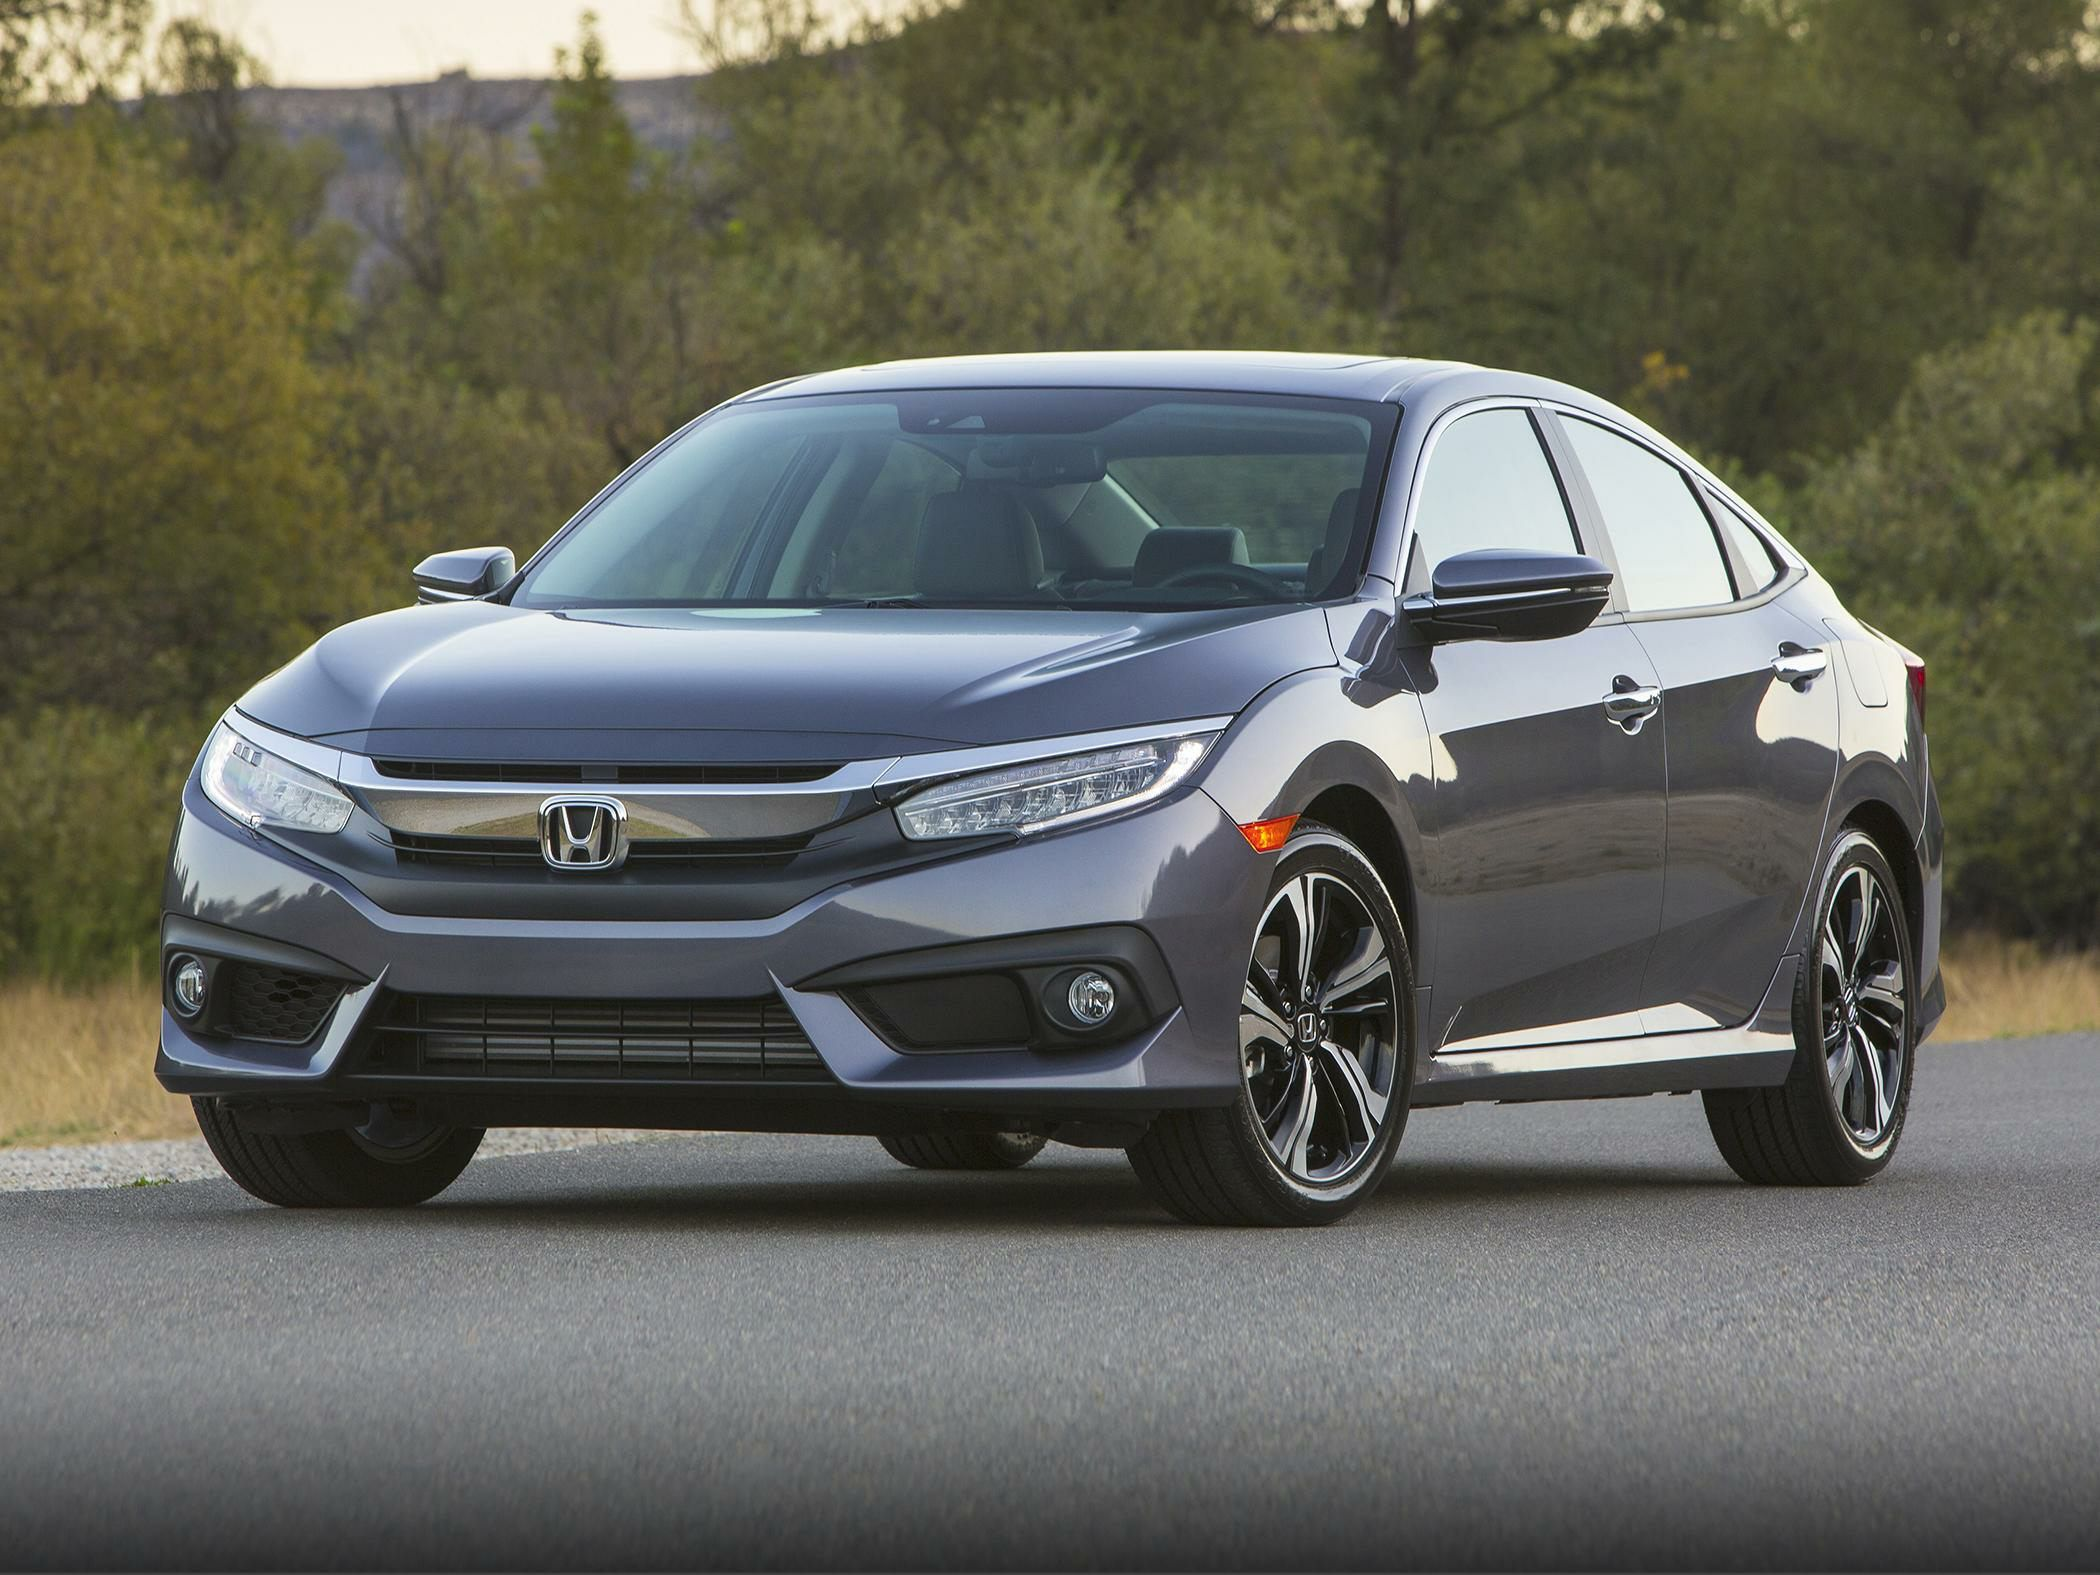 Welcome To Rci Motors Islamabad A Car Rental Company In Islamabad That Is Creating Waves With Its Tremendous Popularity Among Honda Civic Models Honda Civic Honda Civic Sedan